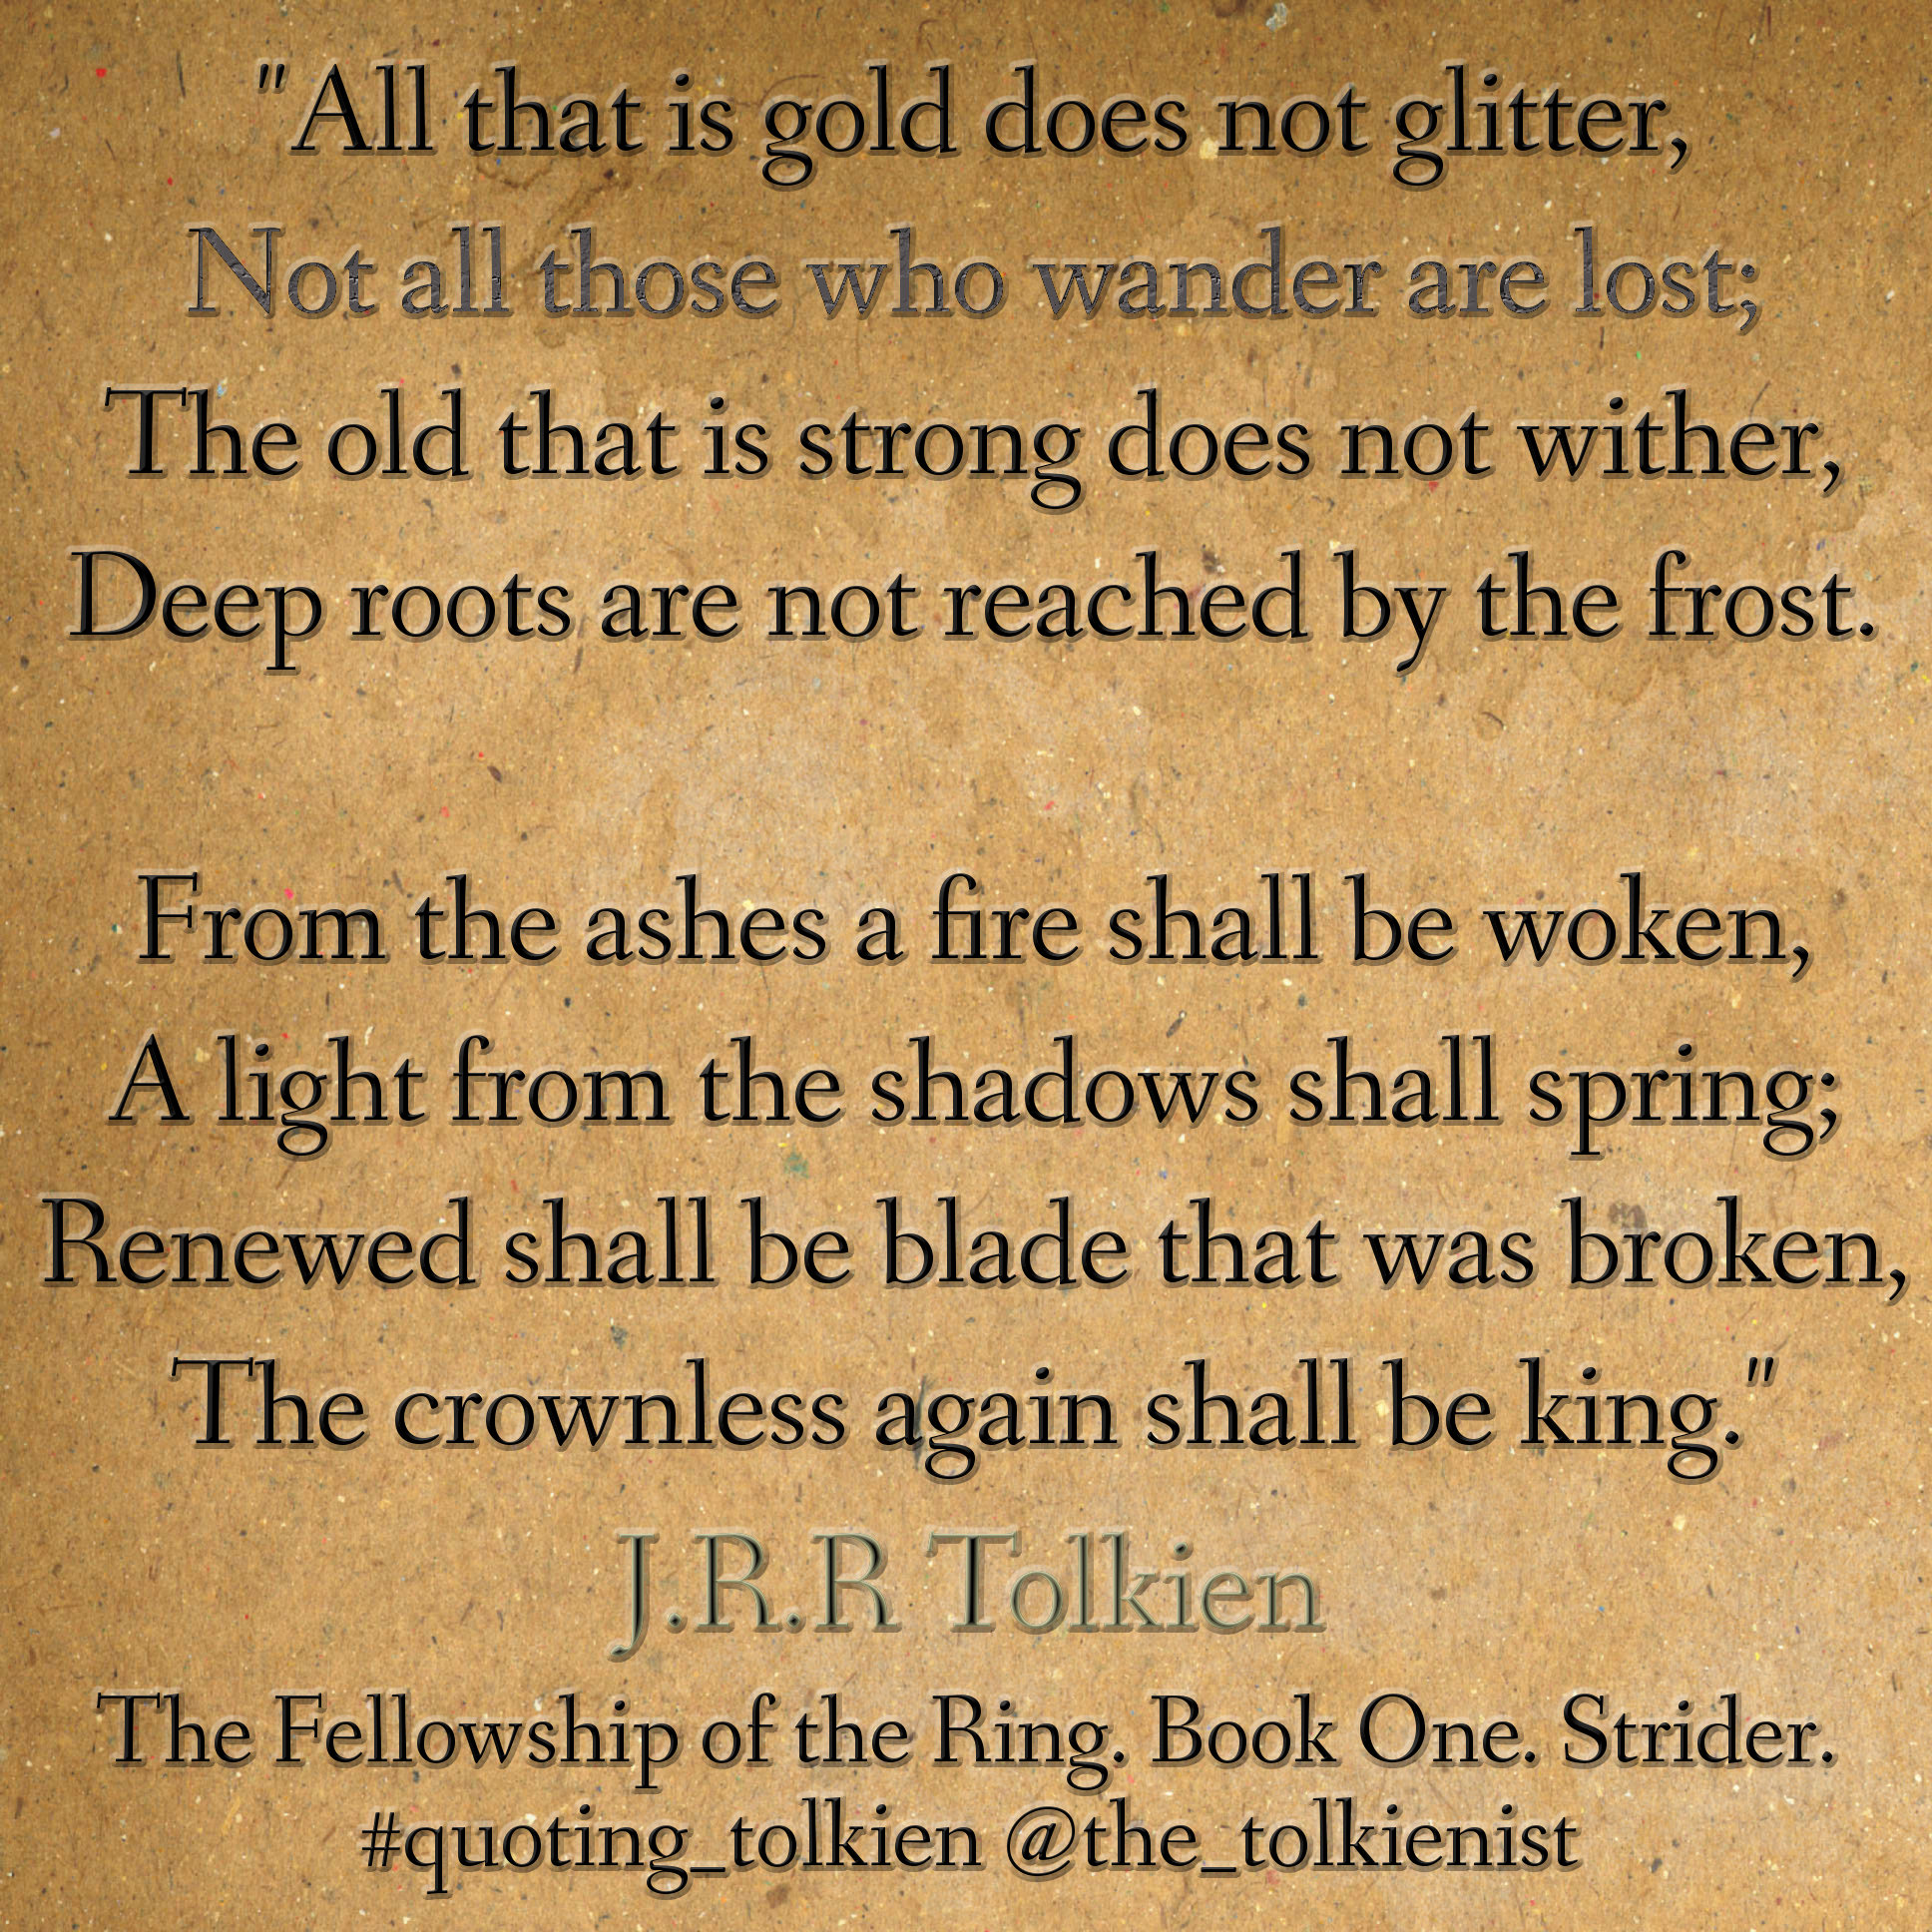 All that is gold does not glitter, poem by J.R.R. Tolkien